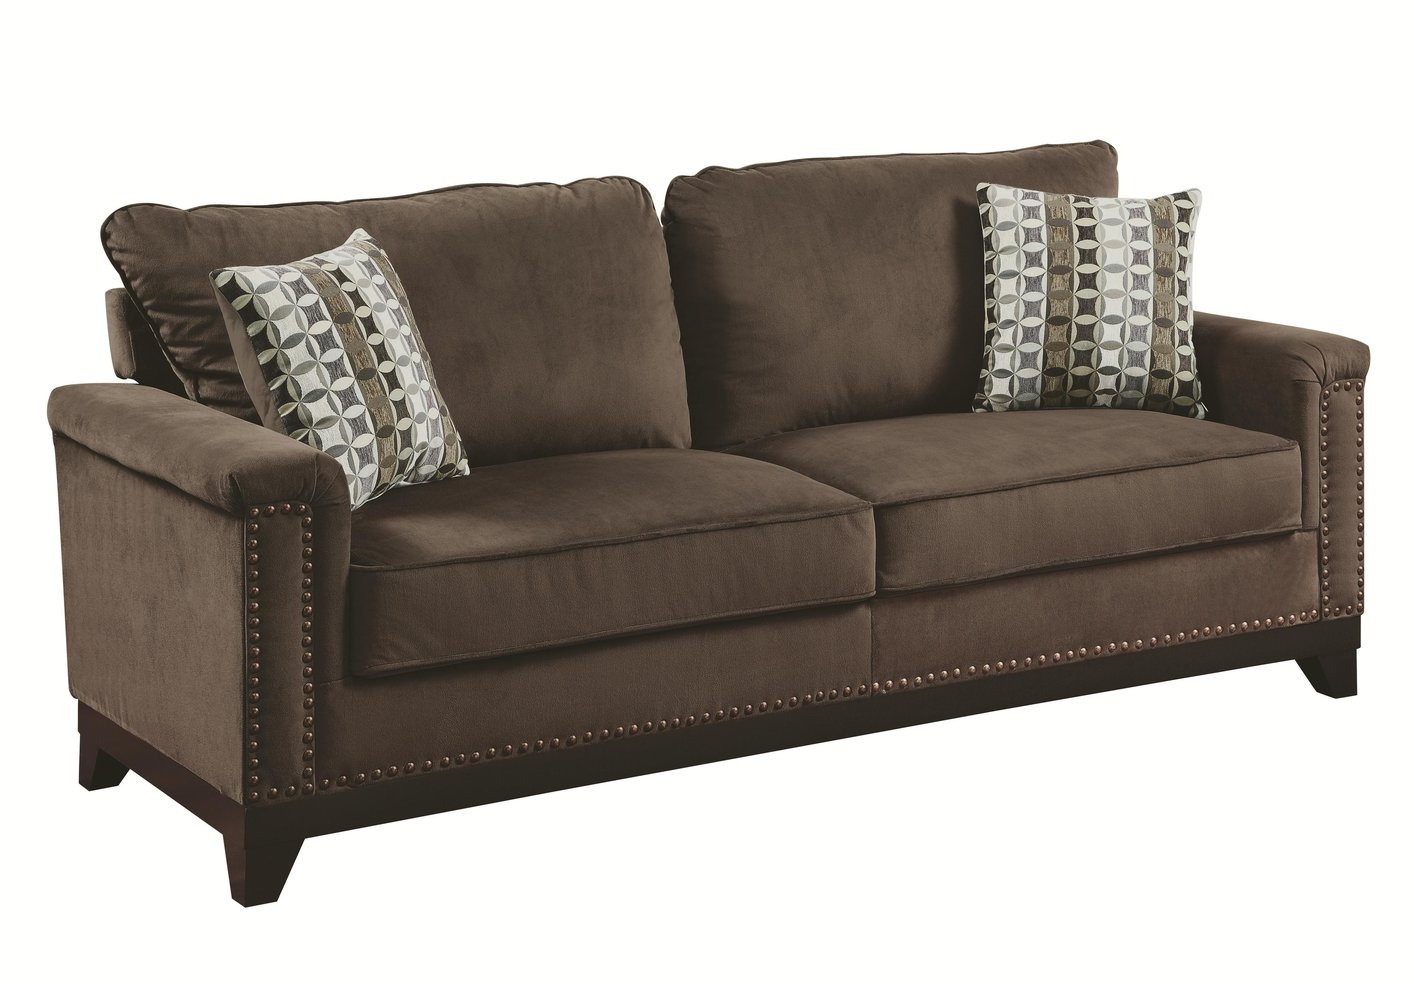 tan fabric sofa how to fix rip in leather brown steal a furniture outlet los